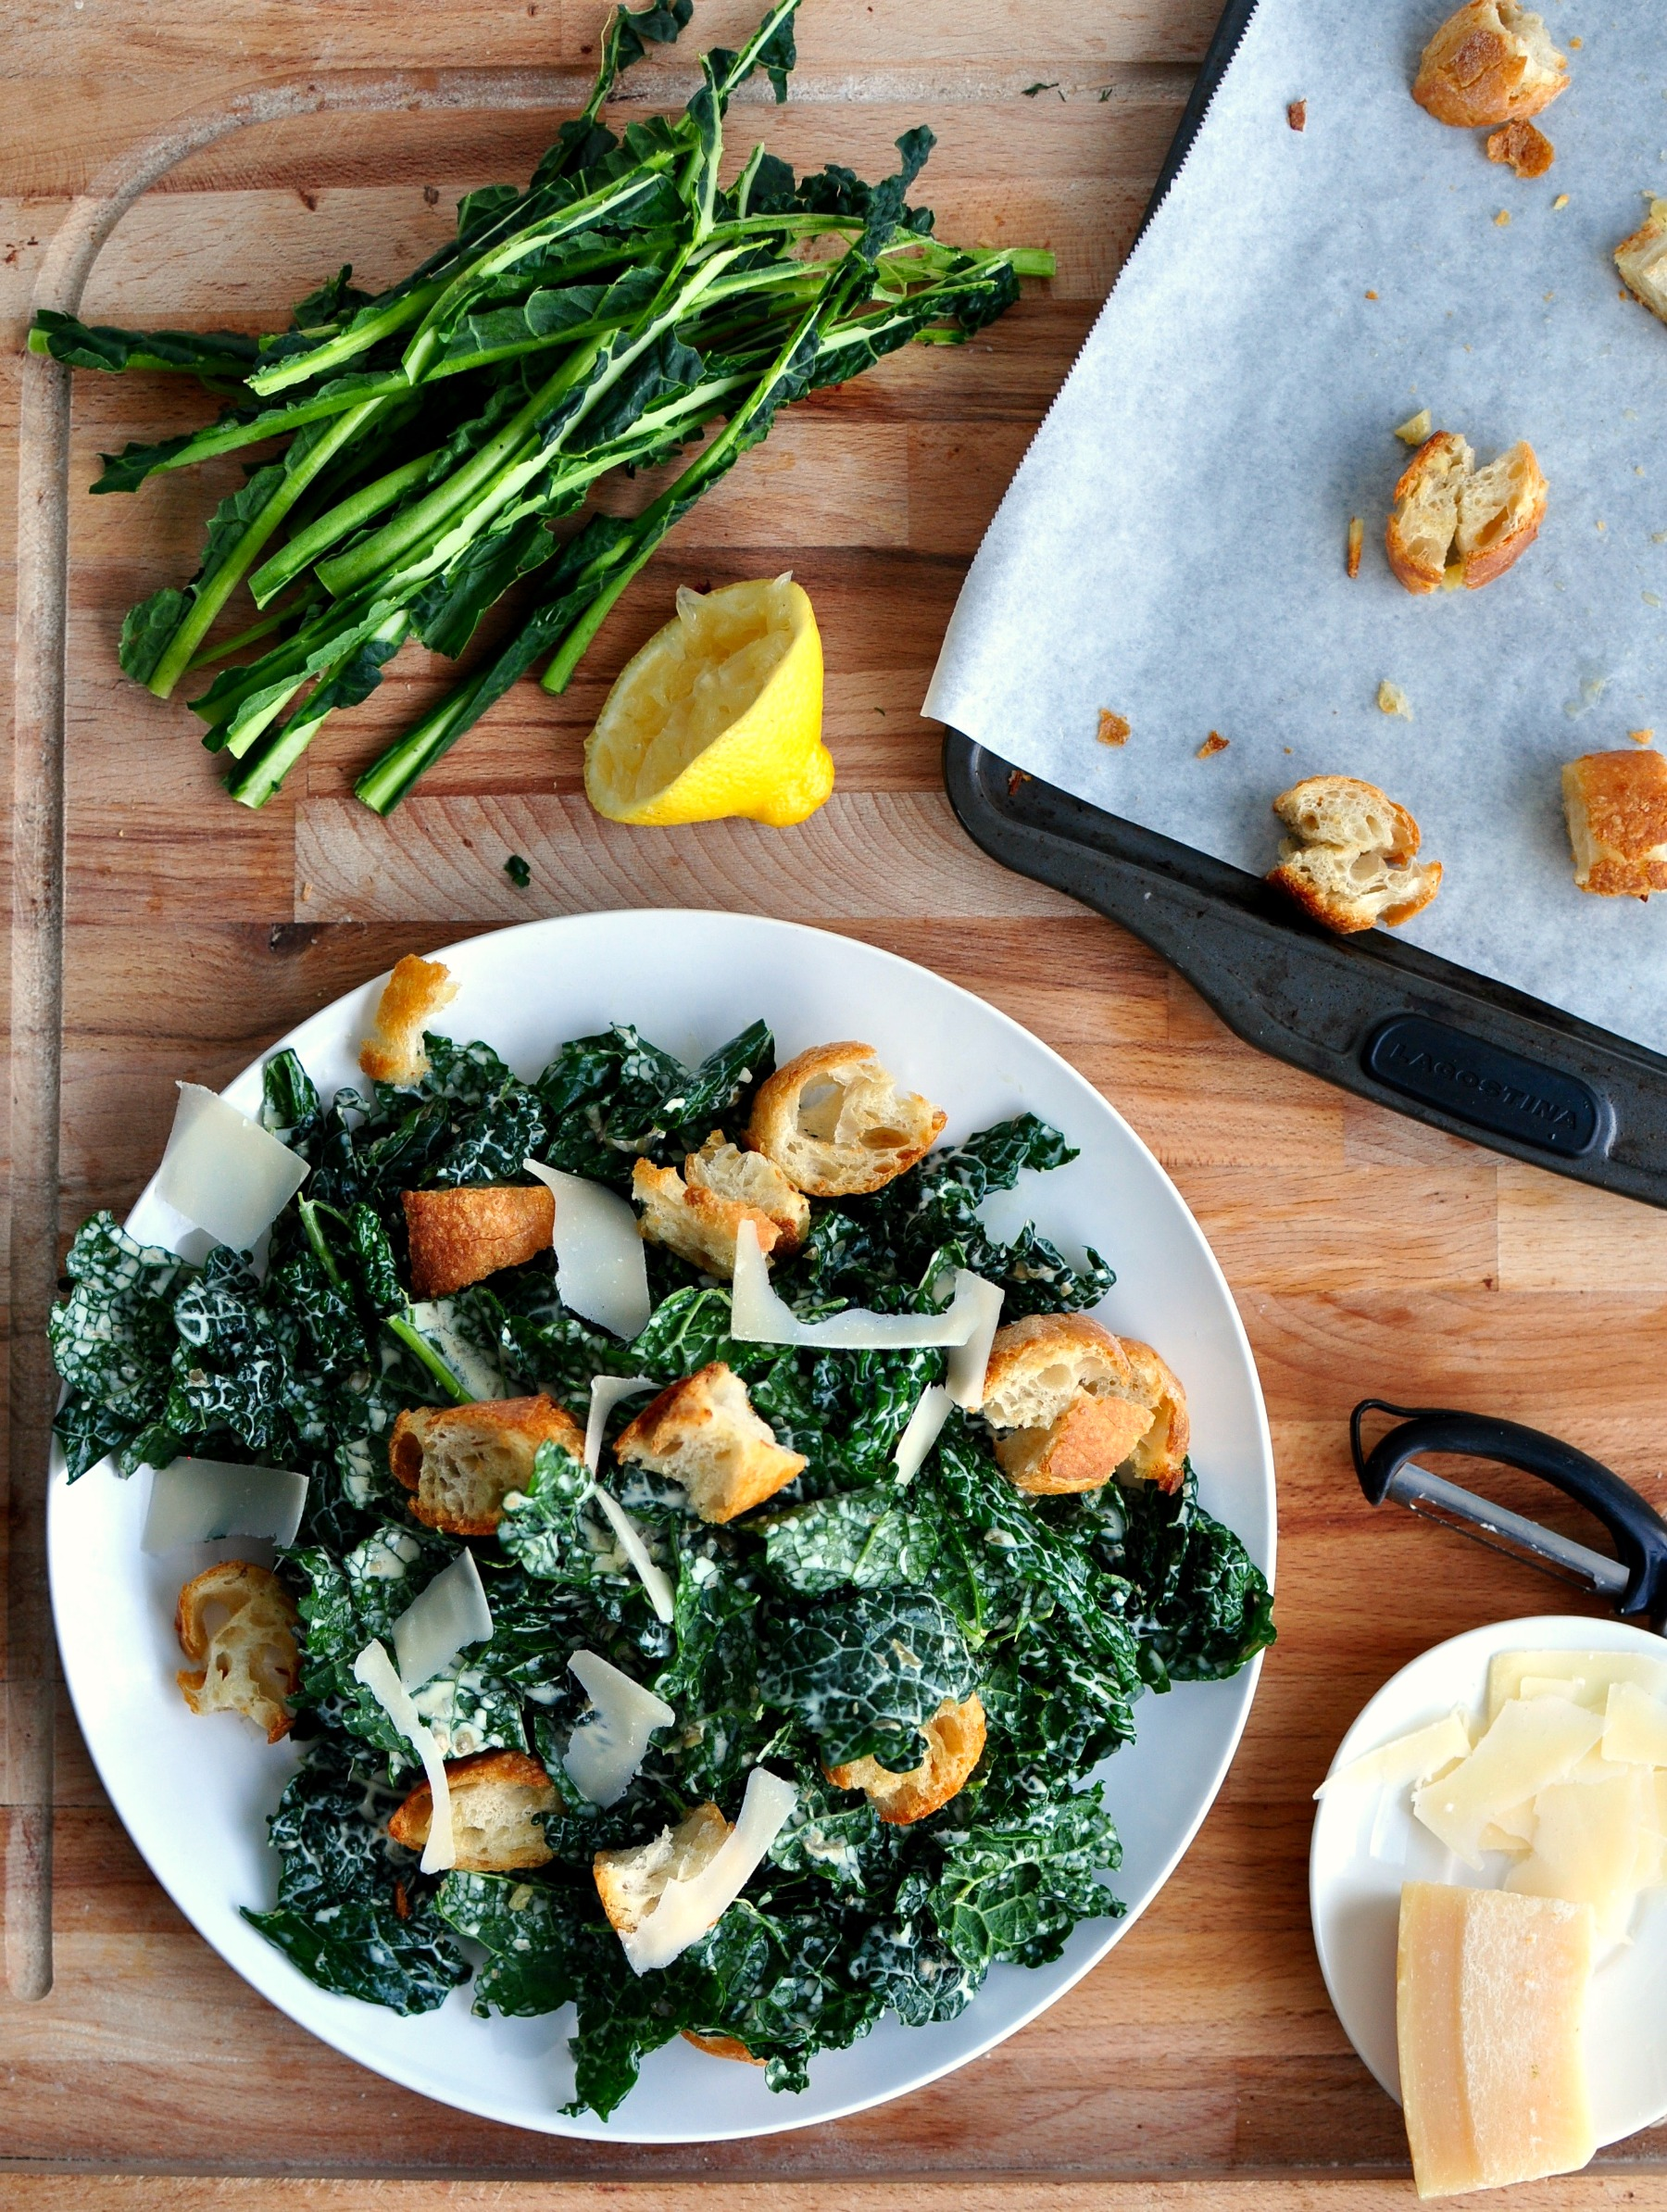 Kale Caesar Salad Recipe | My Second Breakfast